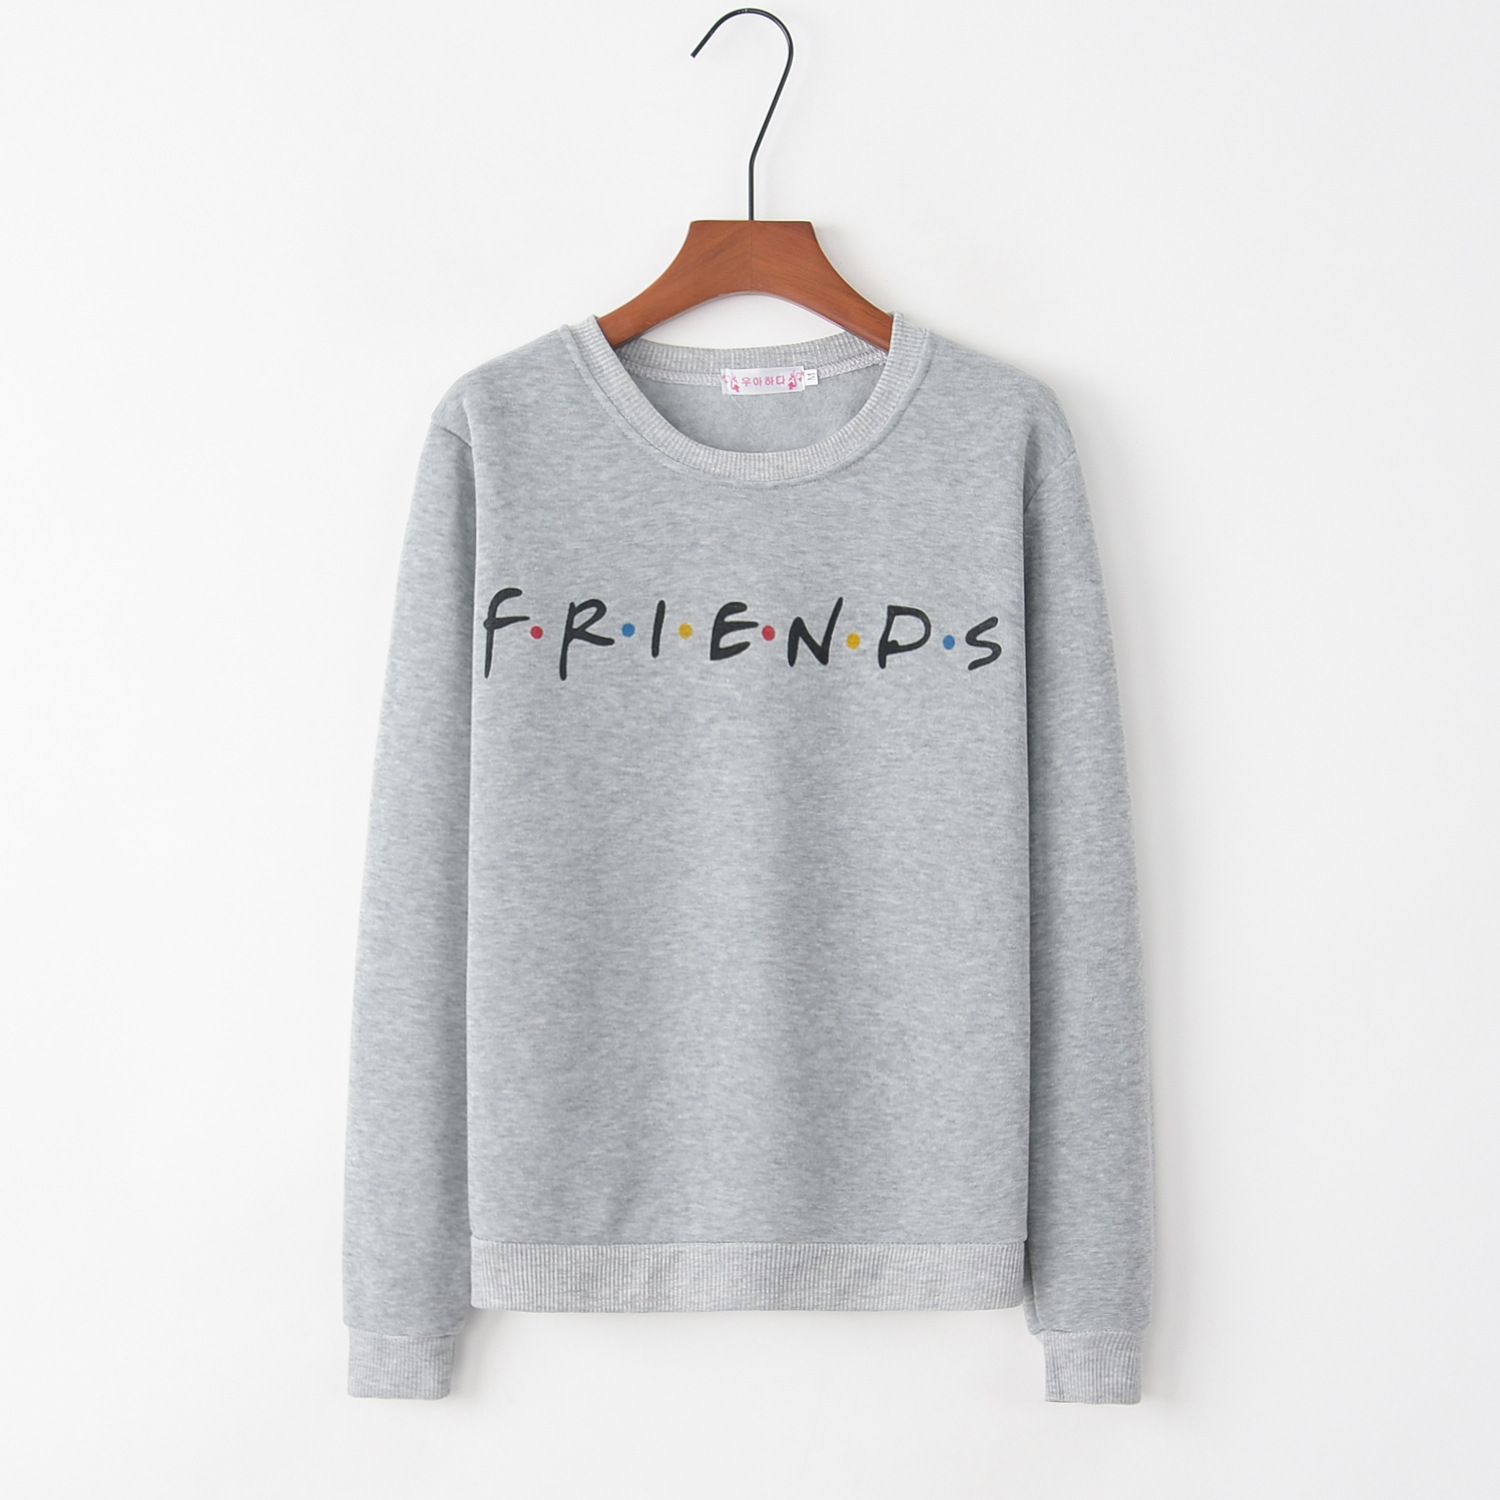 Printed Friends 2020 New Design Hot Sale Hoodies Sweatshirts Women Casual Kawaii Harajuku Sweat Girls European Tops Korean